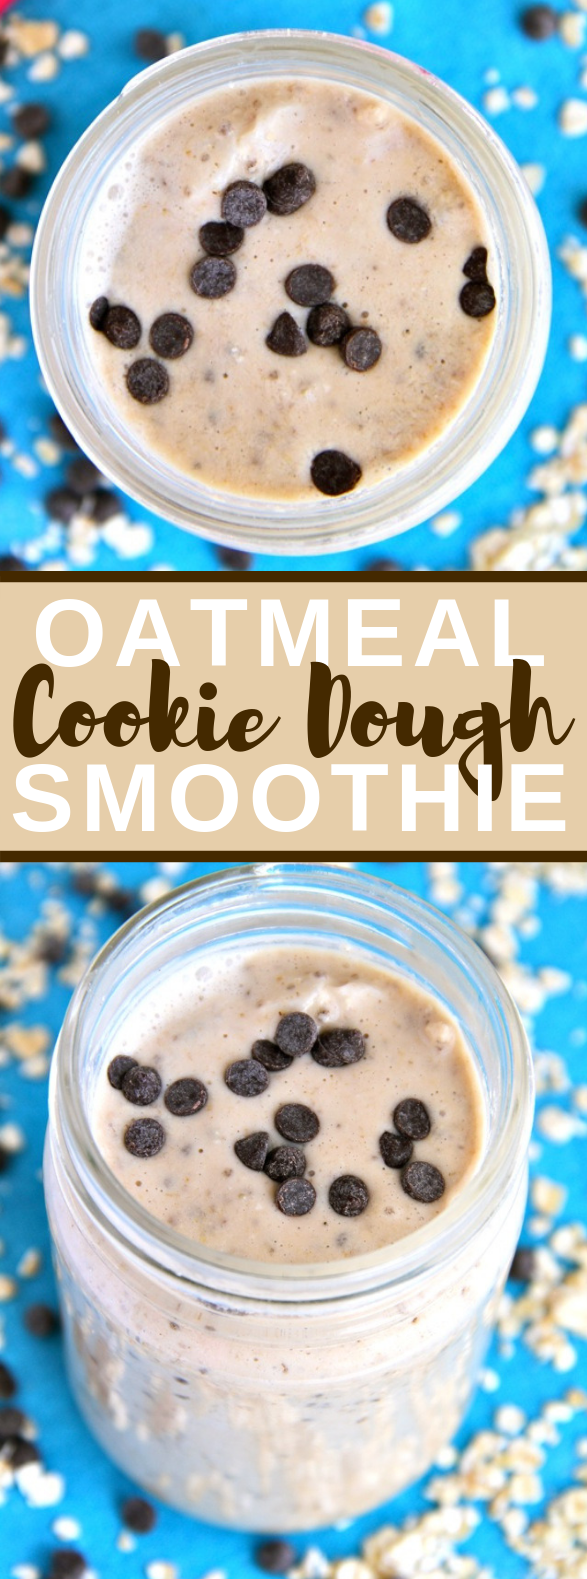 Oatmeal Cookie Dough Smoothie #drinks #healthydrink